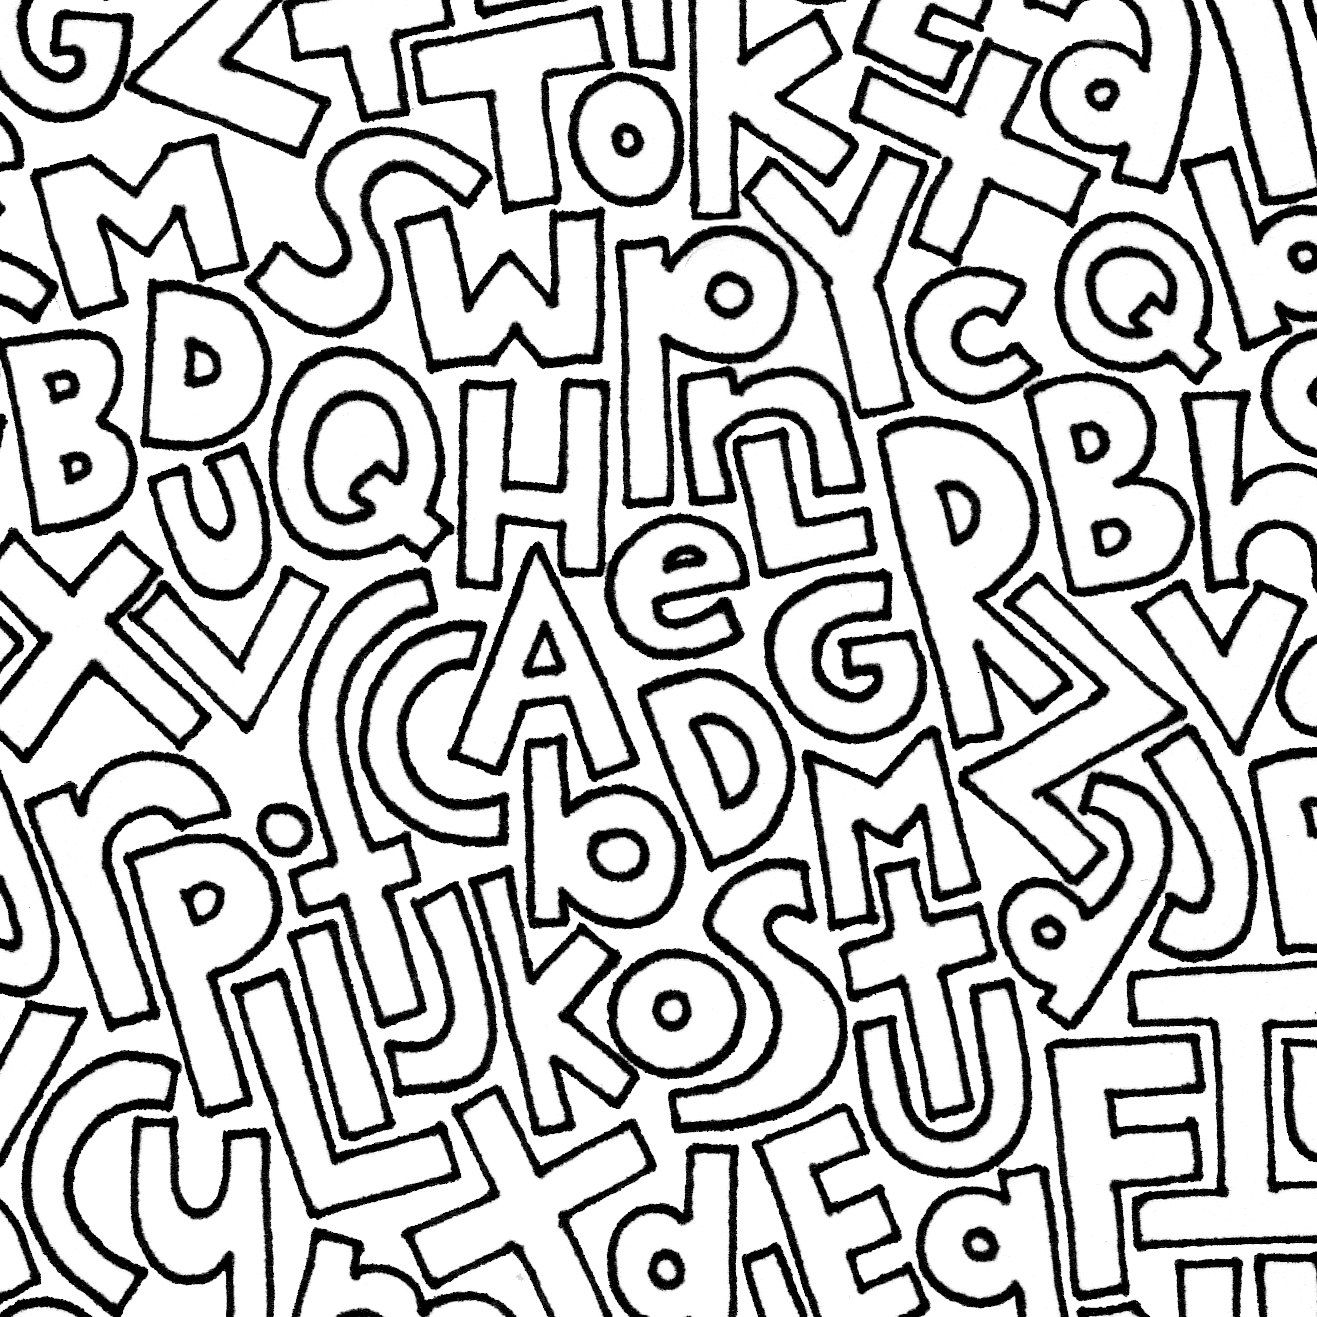 ALPHABET COLORING PAGE | Etsy | Coloring pages, Alphabet ...